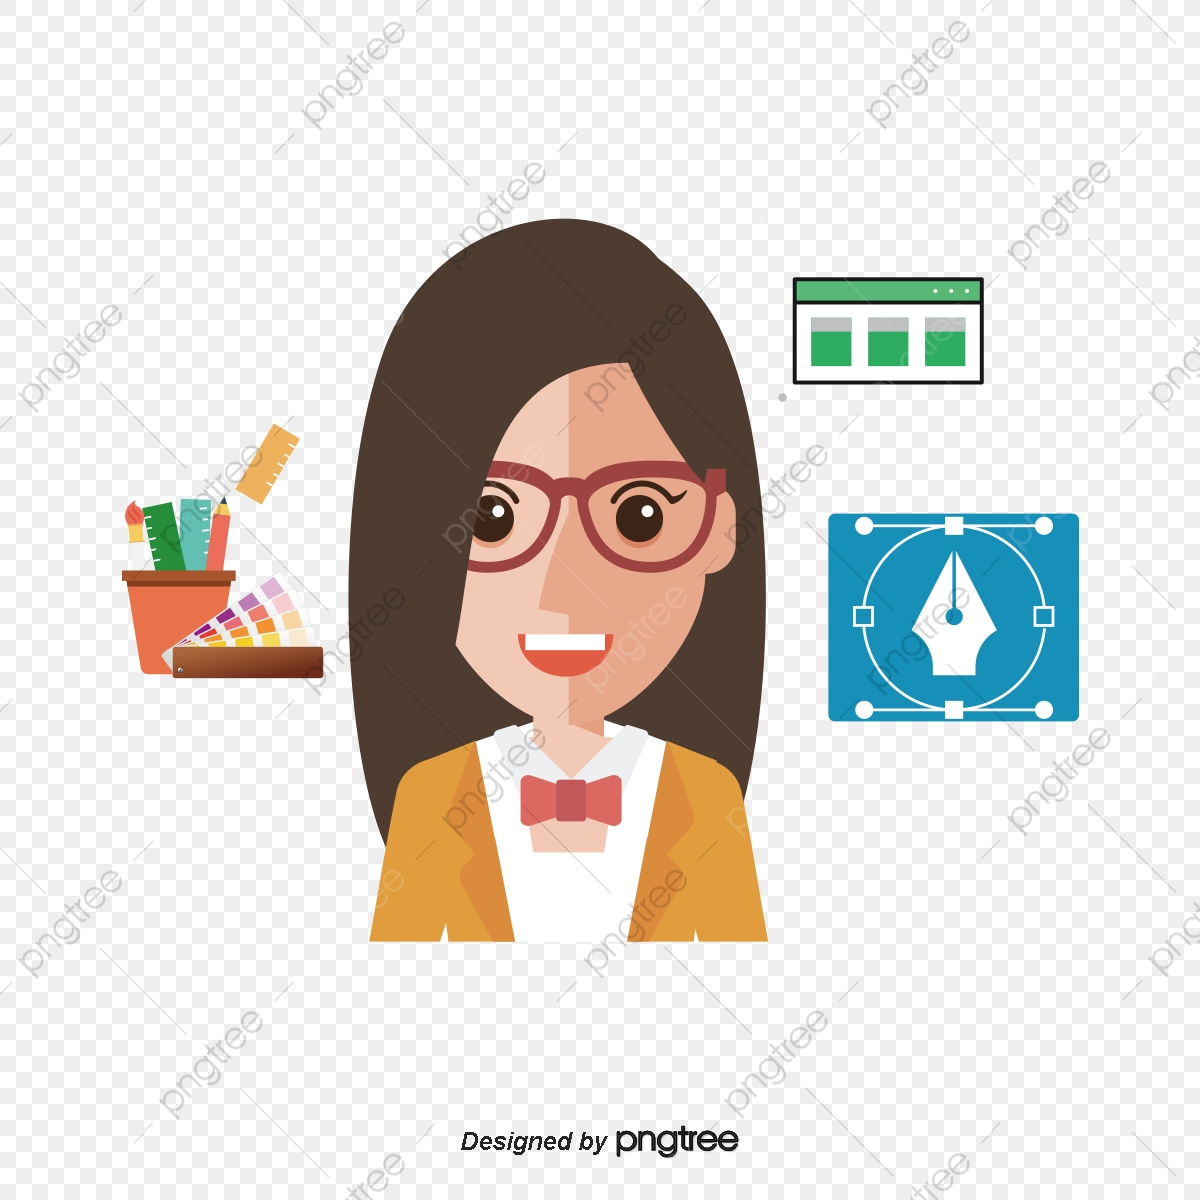 Graphic Designer, Vector Material, Interface Design, Designer PNG.